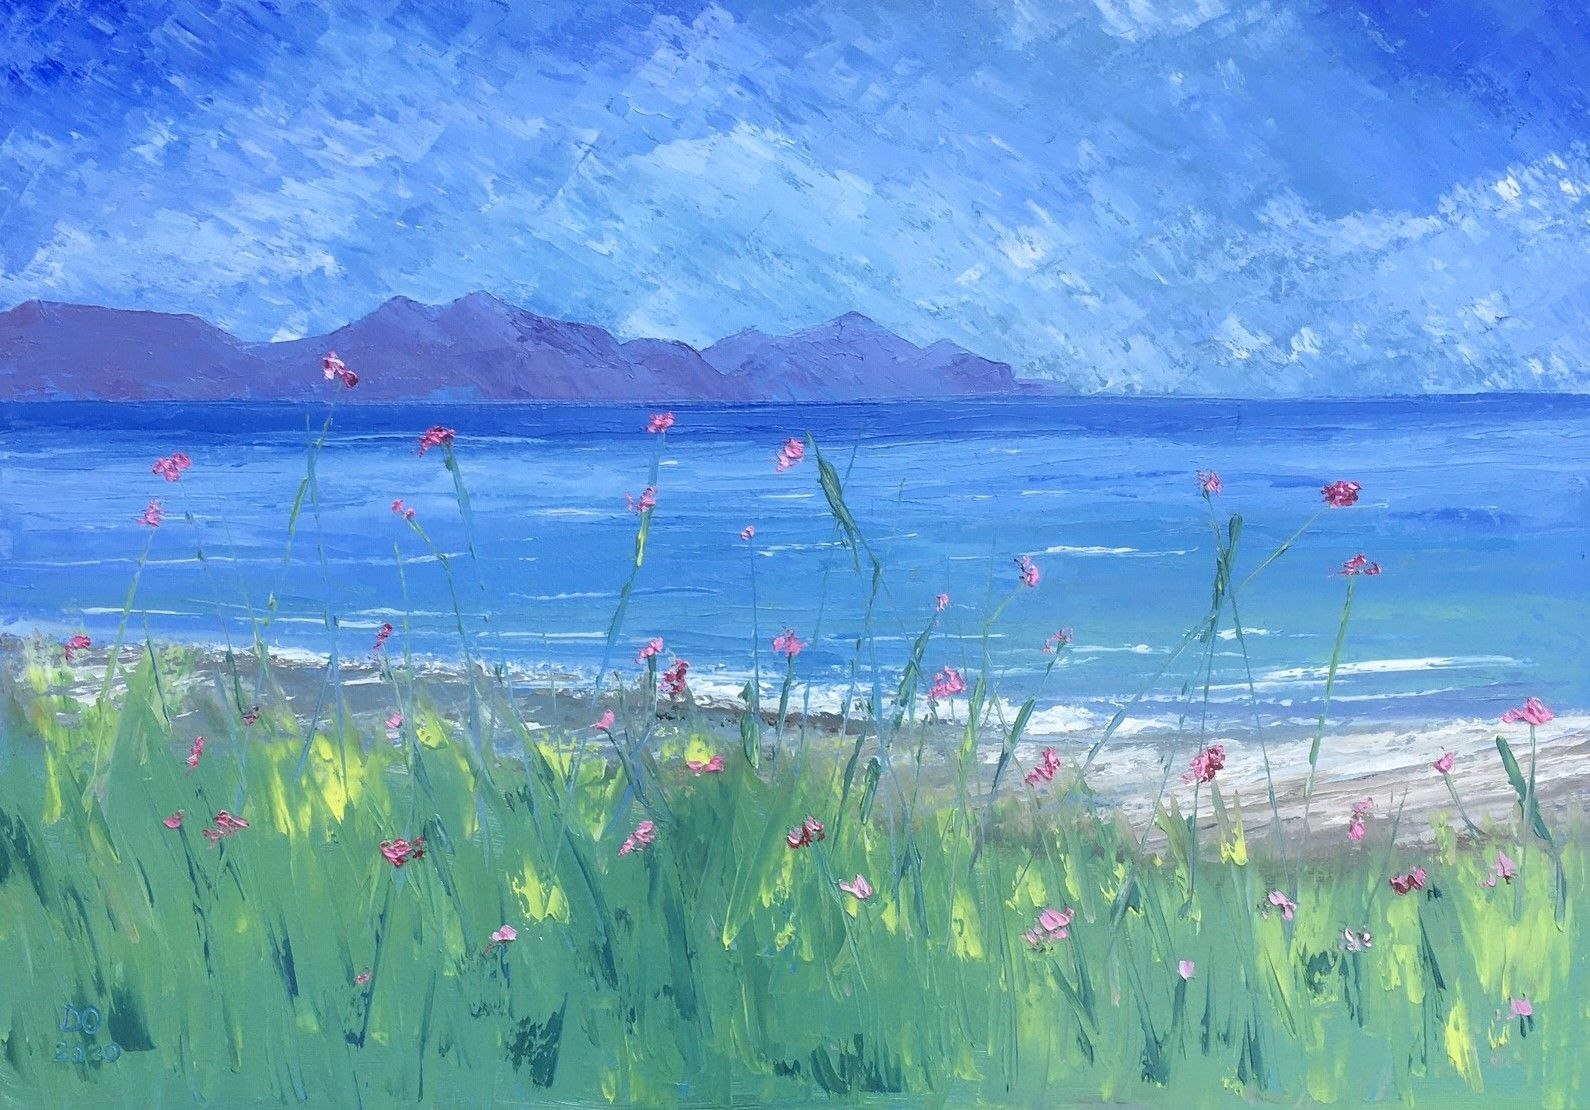 Seascape oil on canvas, The Rivals, Dinas Dinlle. Dawn Owen artist at Clebran